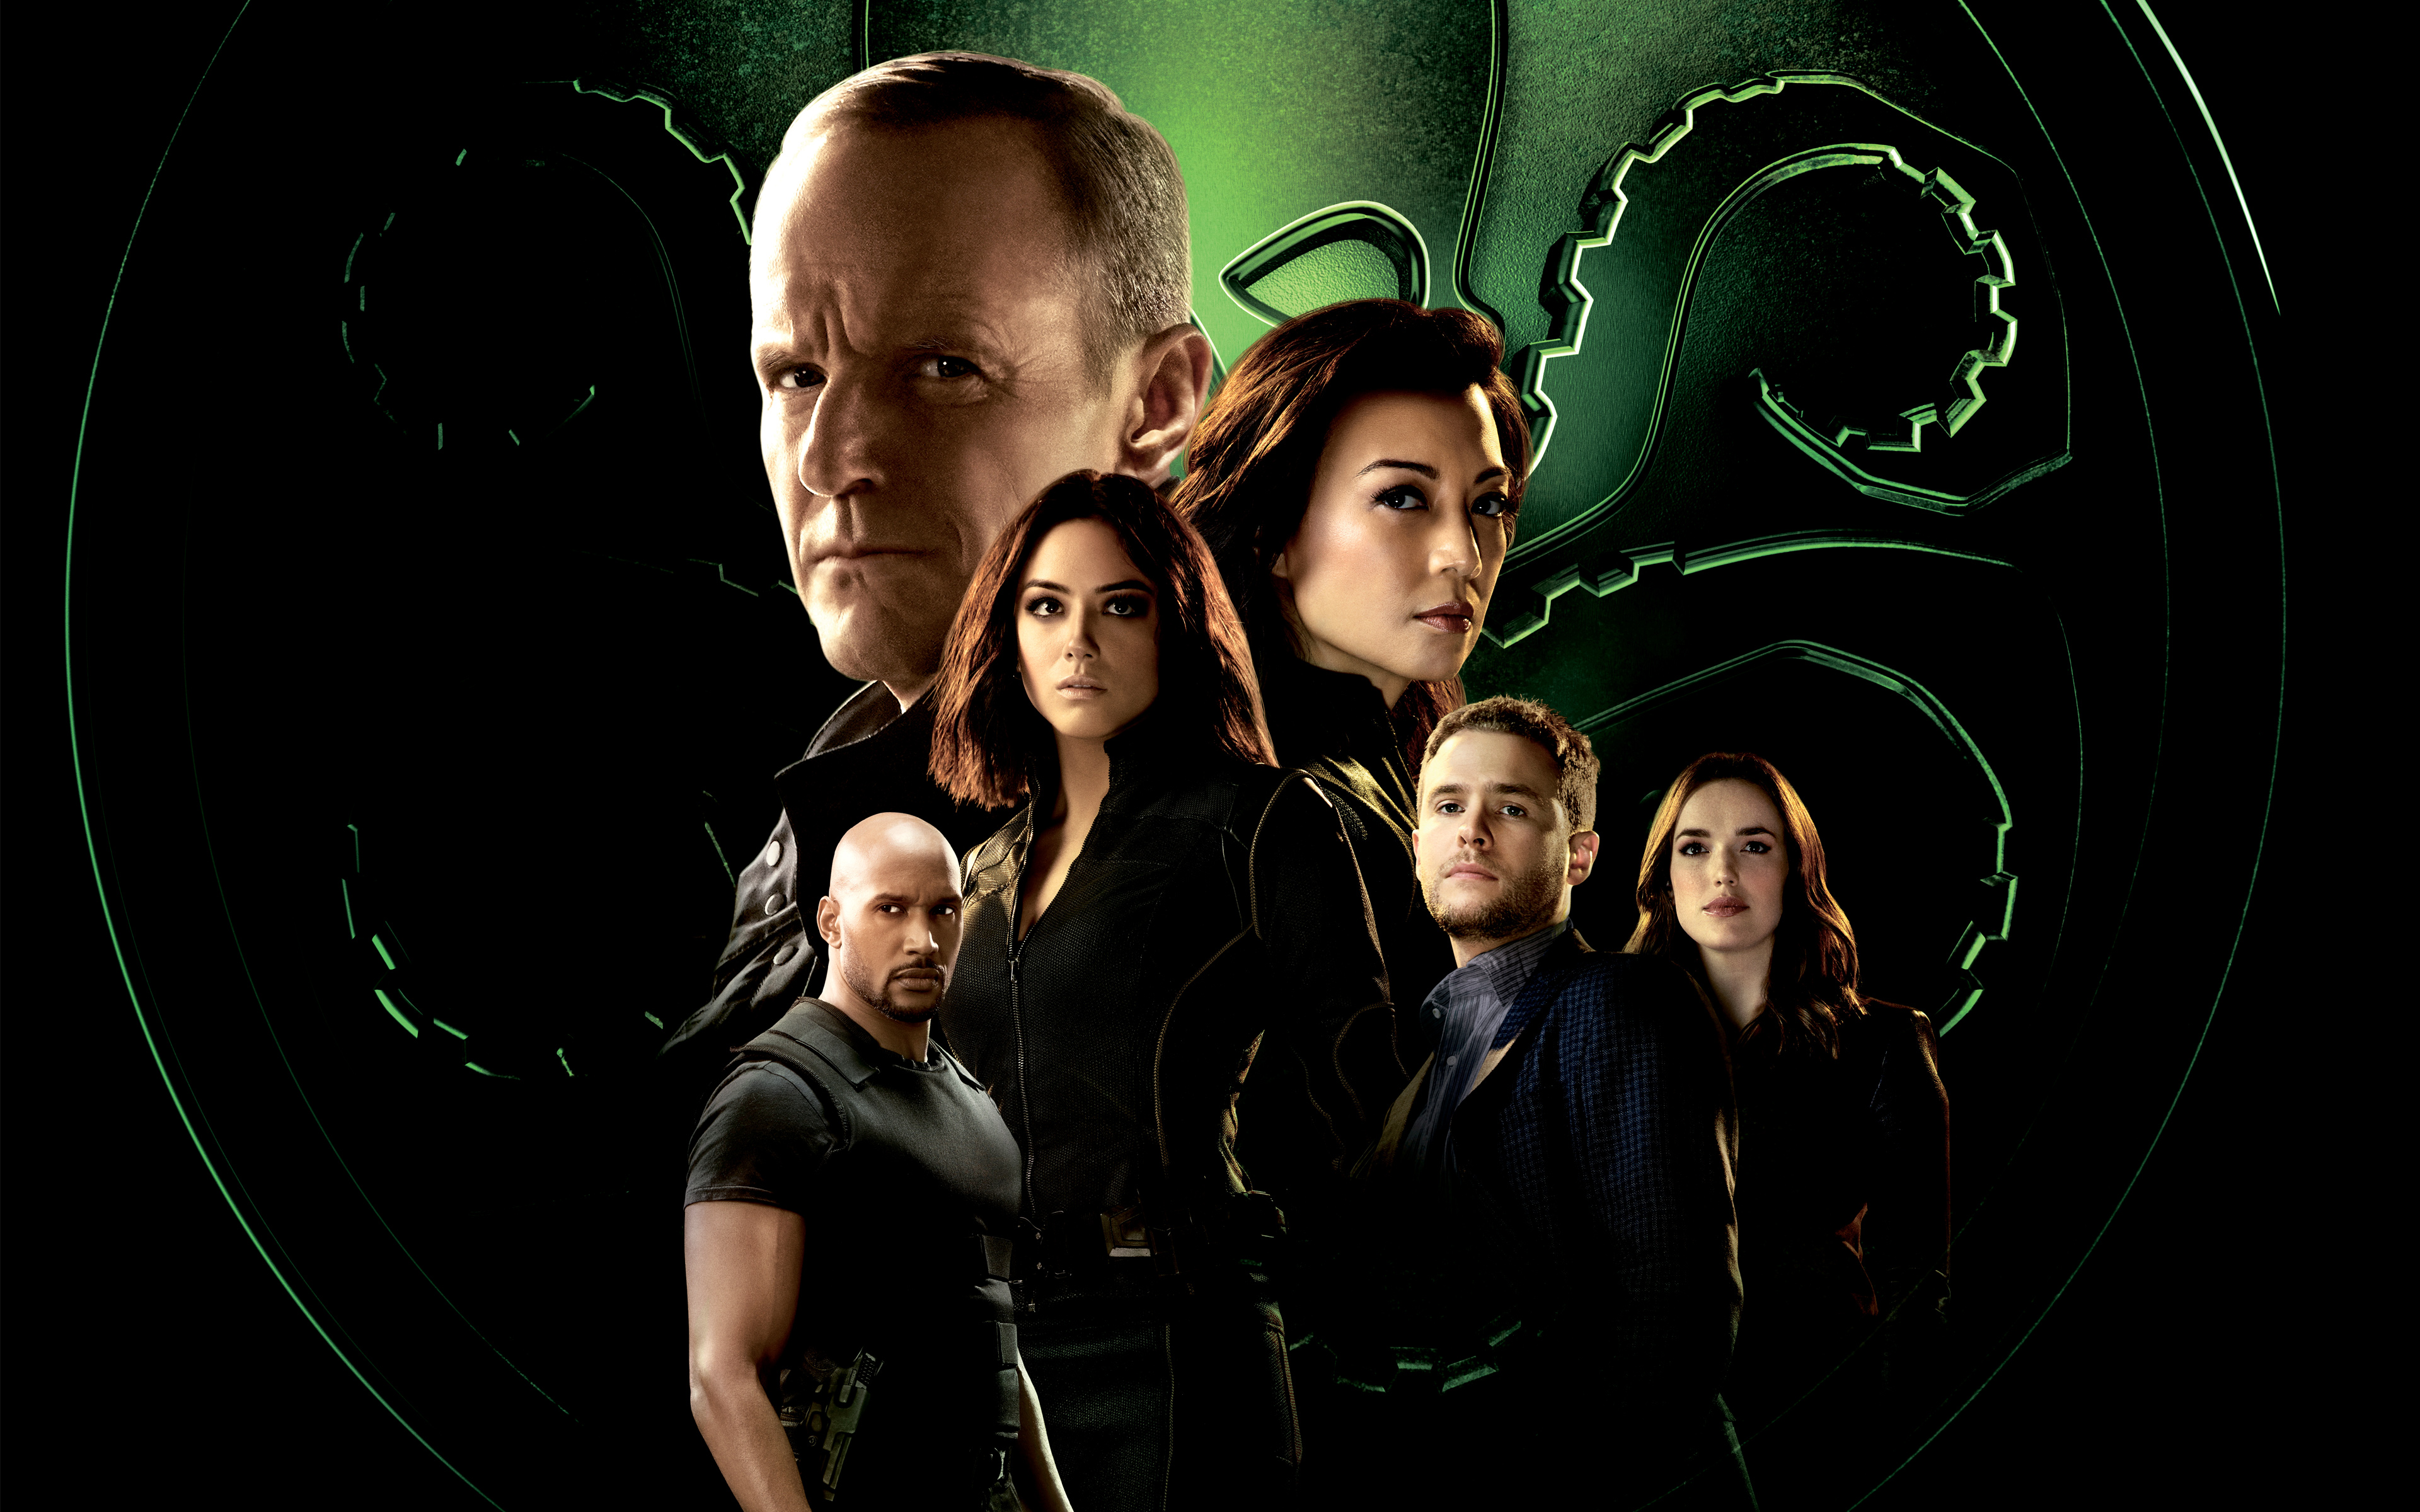 Marvel Agents of SHIELD 4K 8K 2017 Wallpapers